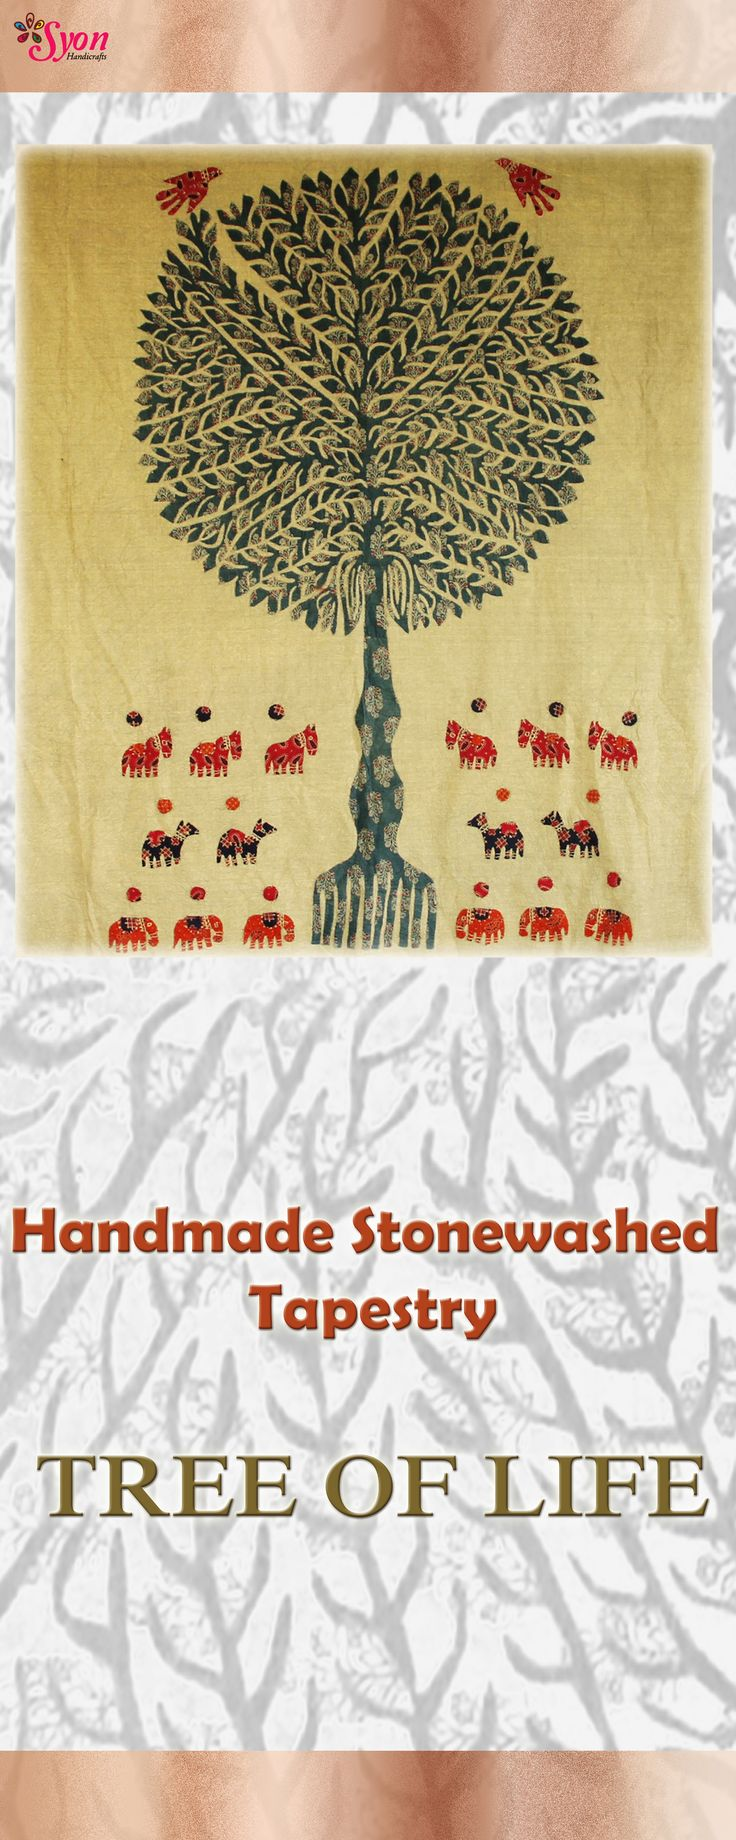 Stonewashed Tapestry - Tree of life !!